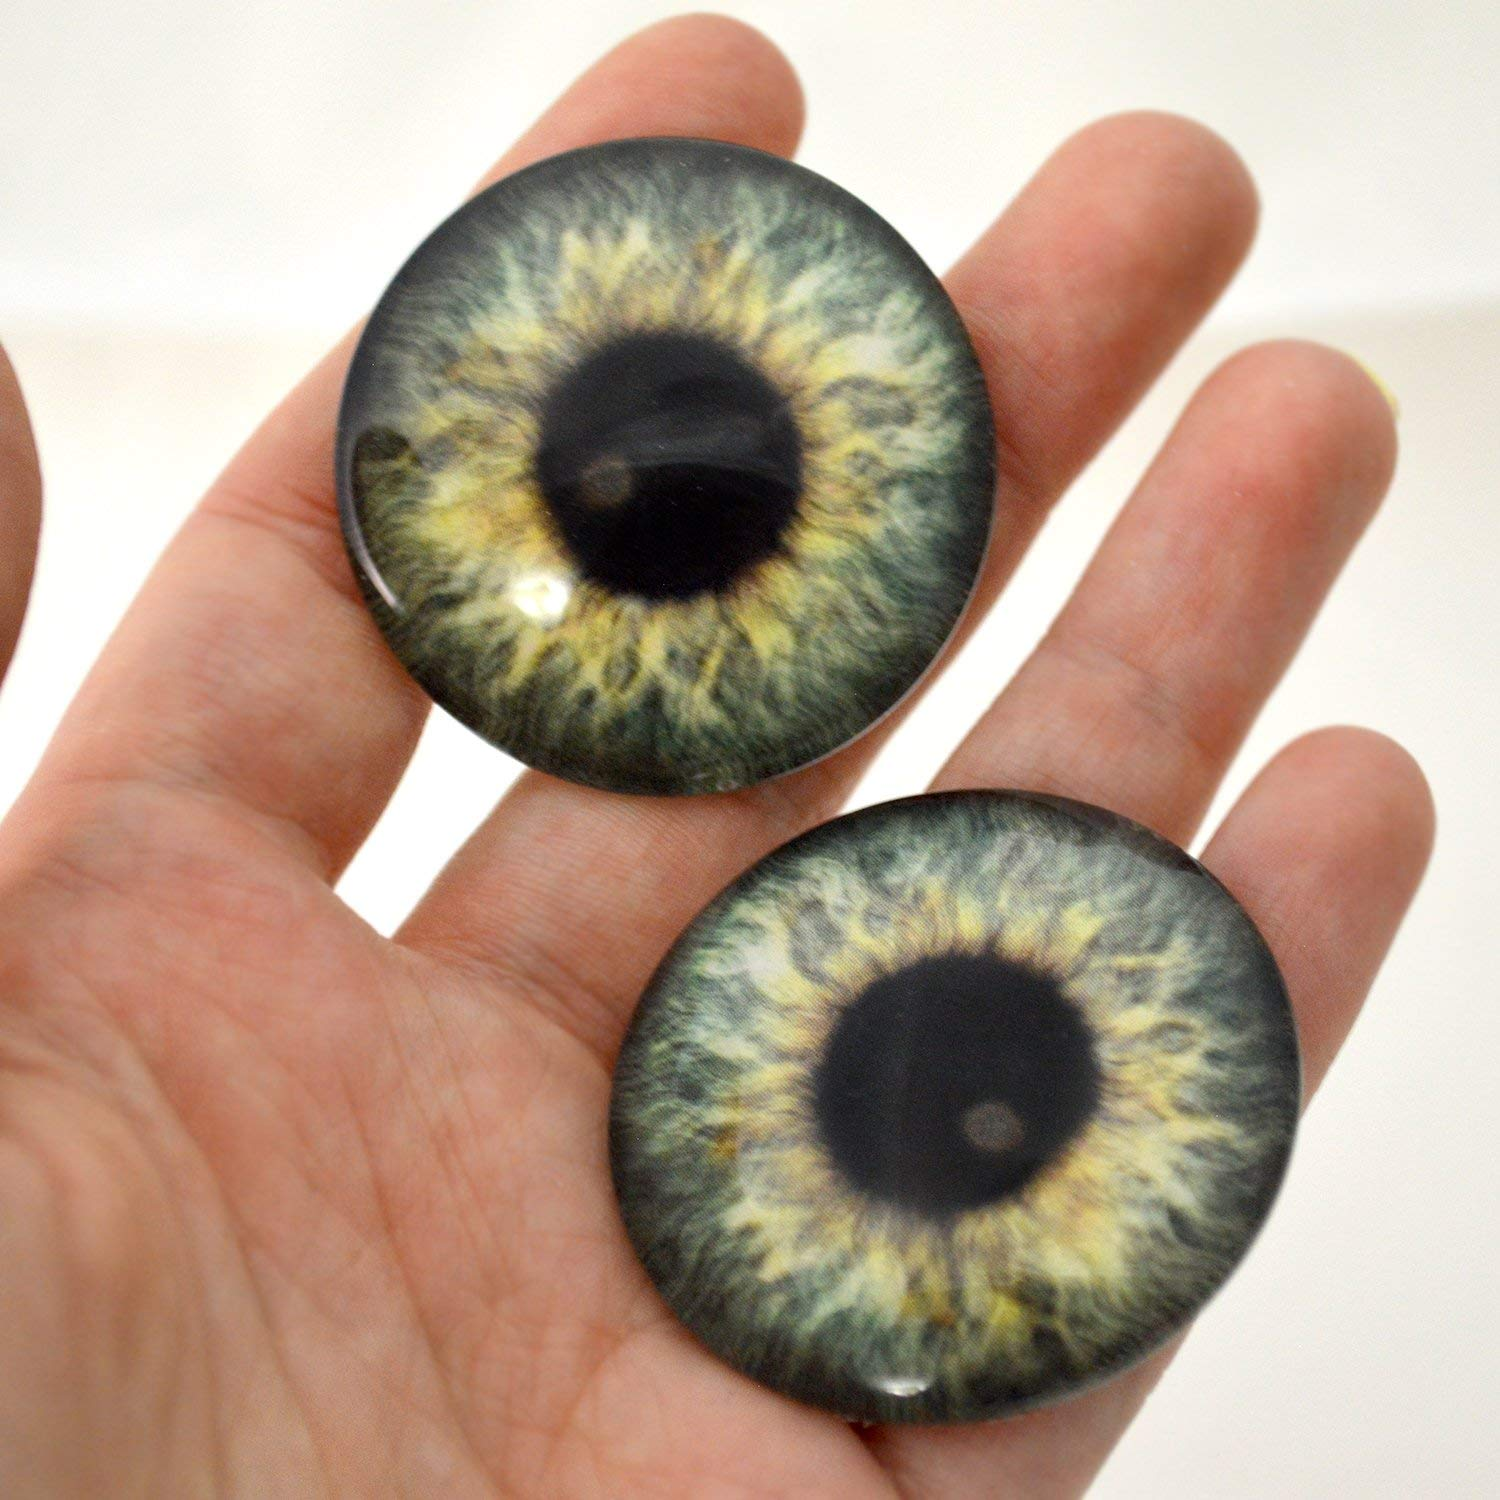 40mm Glass Eyes Olive Green Fantasy Pair Taxidermy Sculptures or Jewelry Making Crafts Set of 2